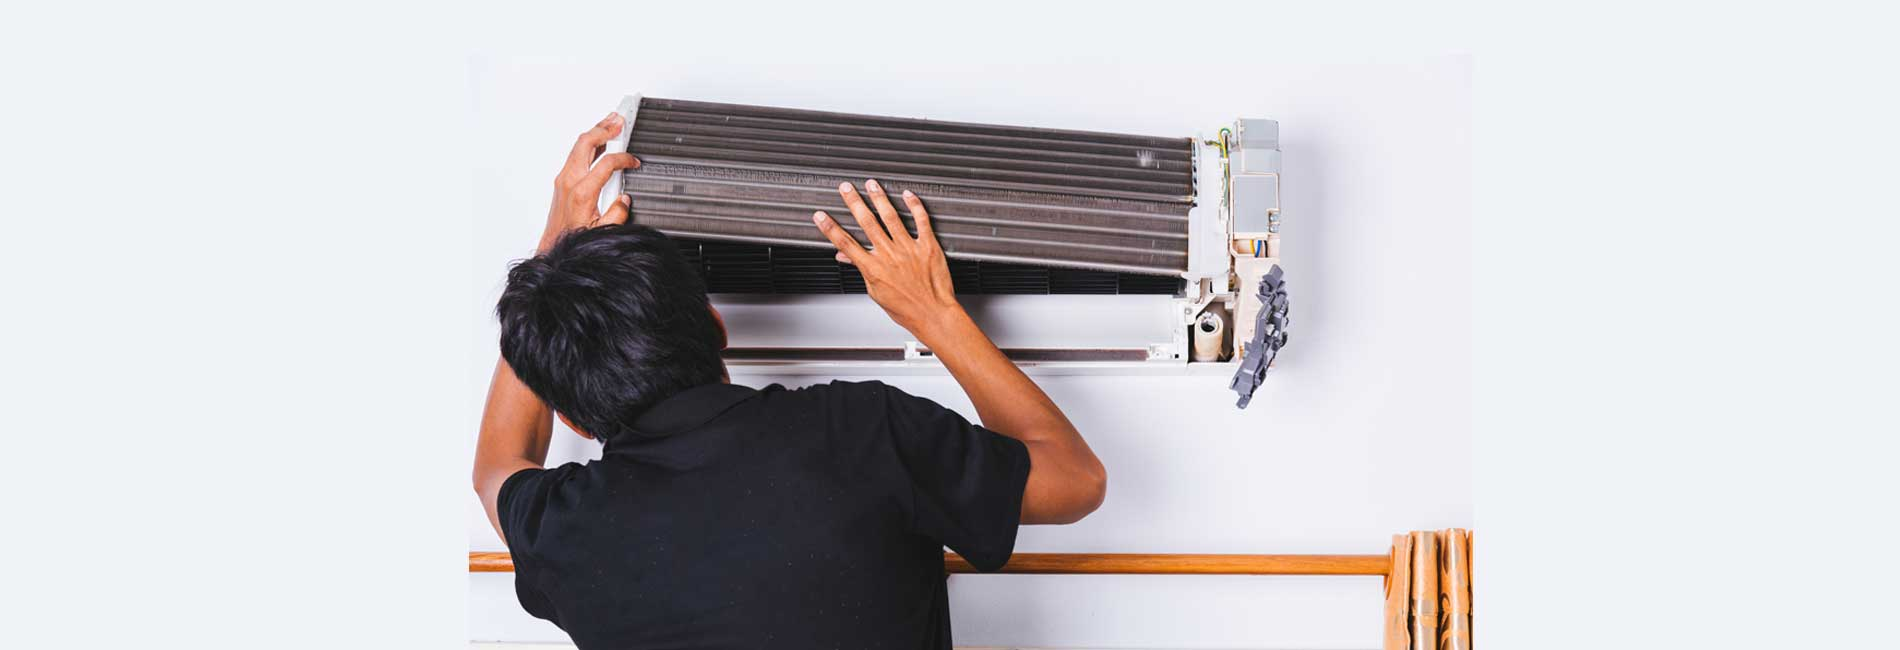 Air Conditioner Service in Thousand Lights